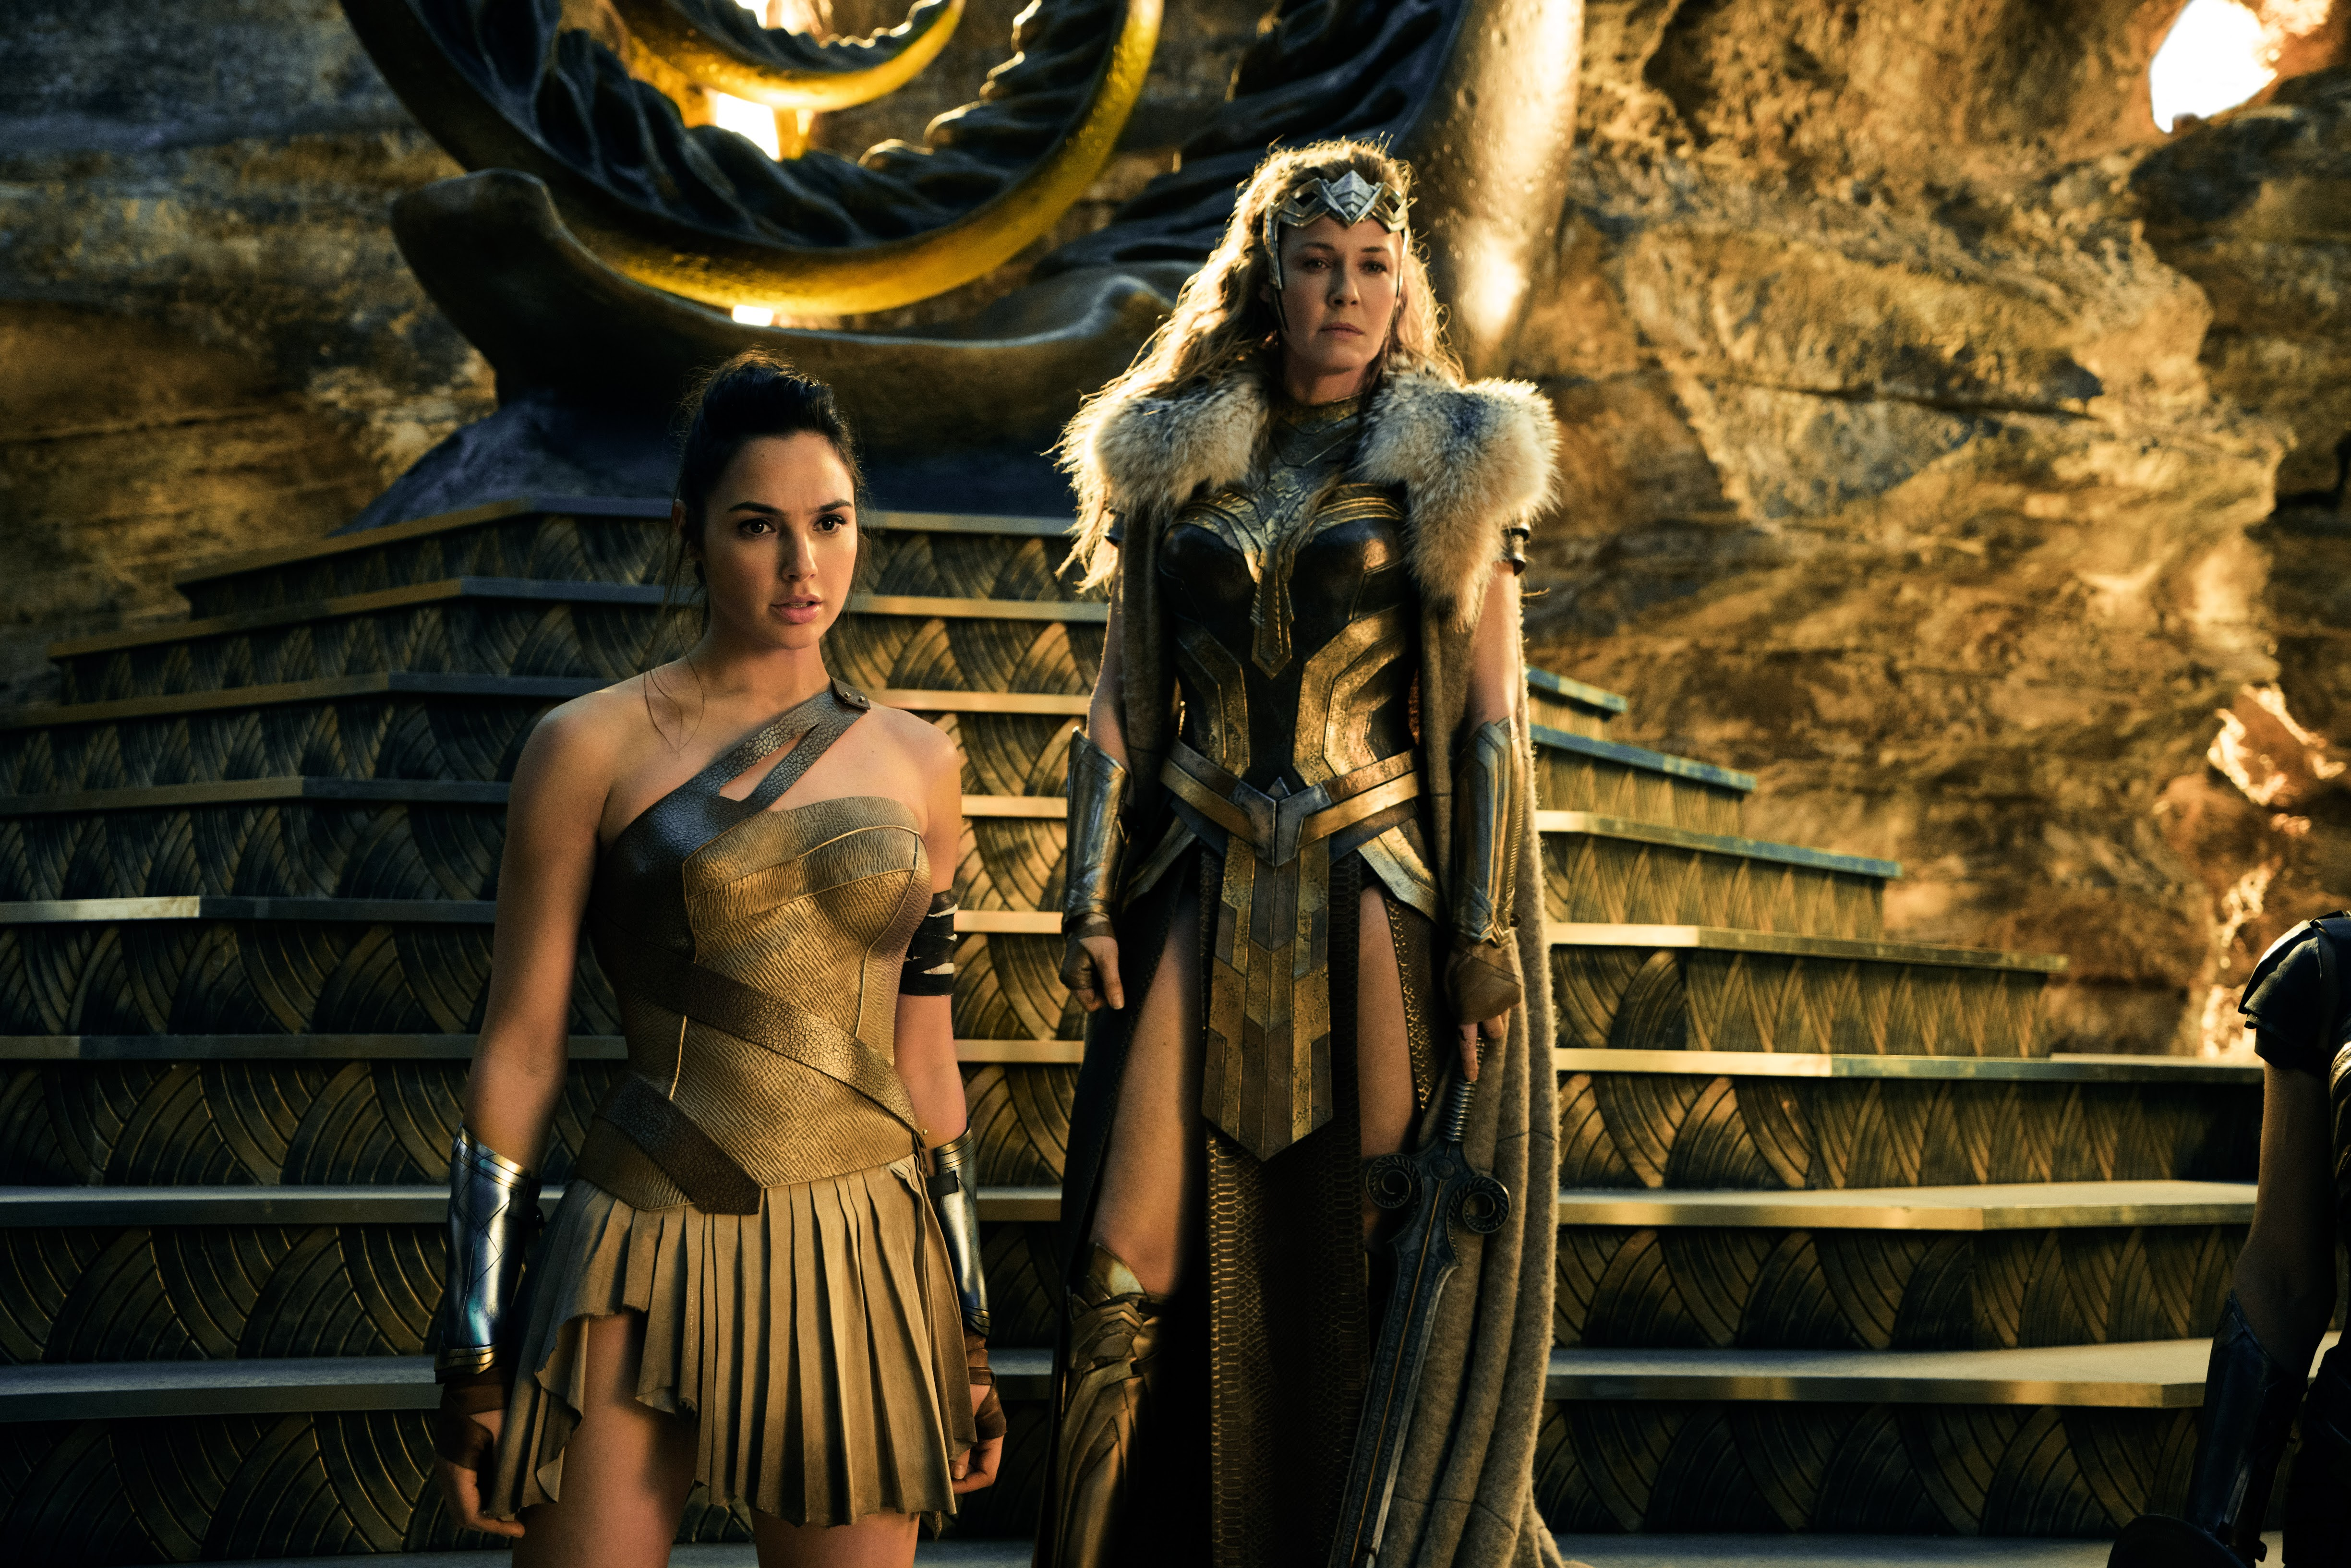 wonder woman with her mother hippolyta movies hd 4k